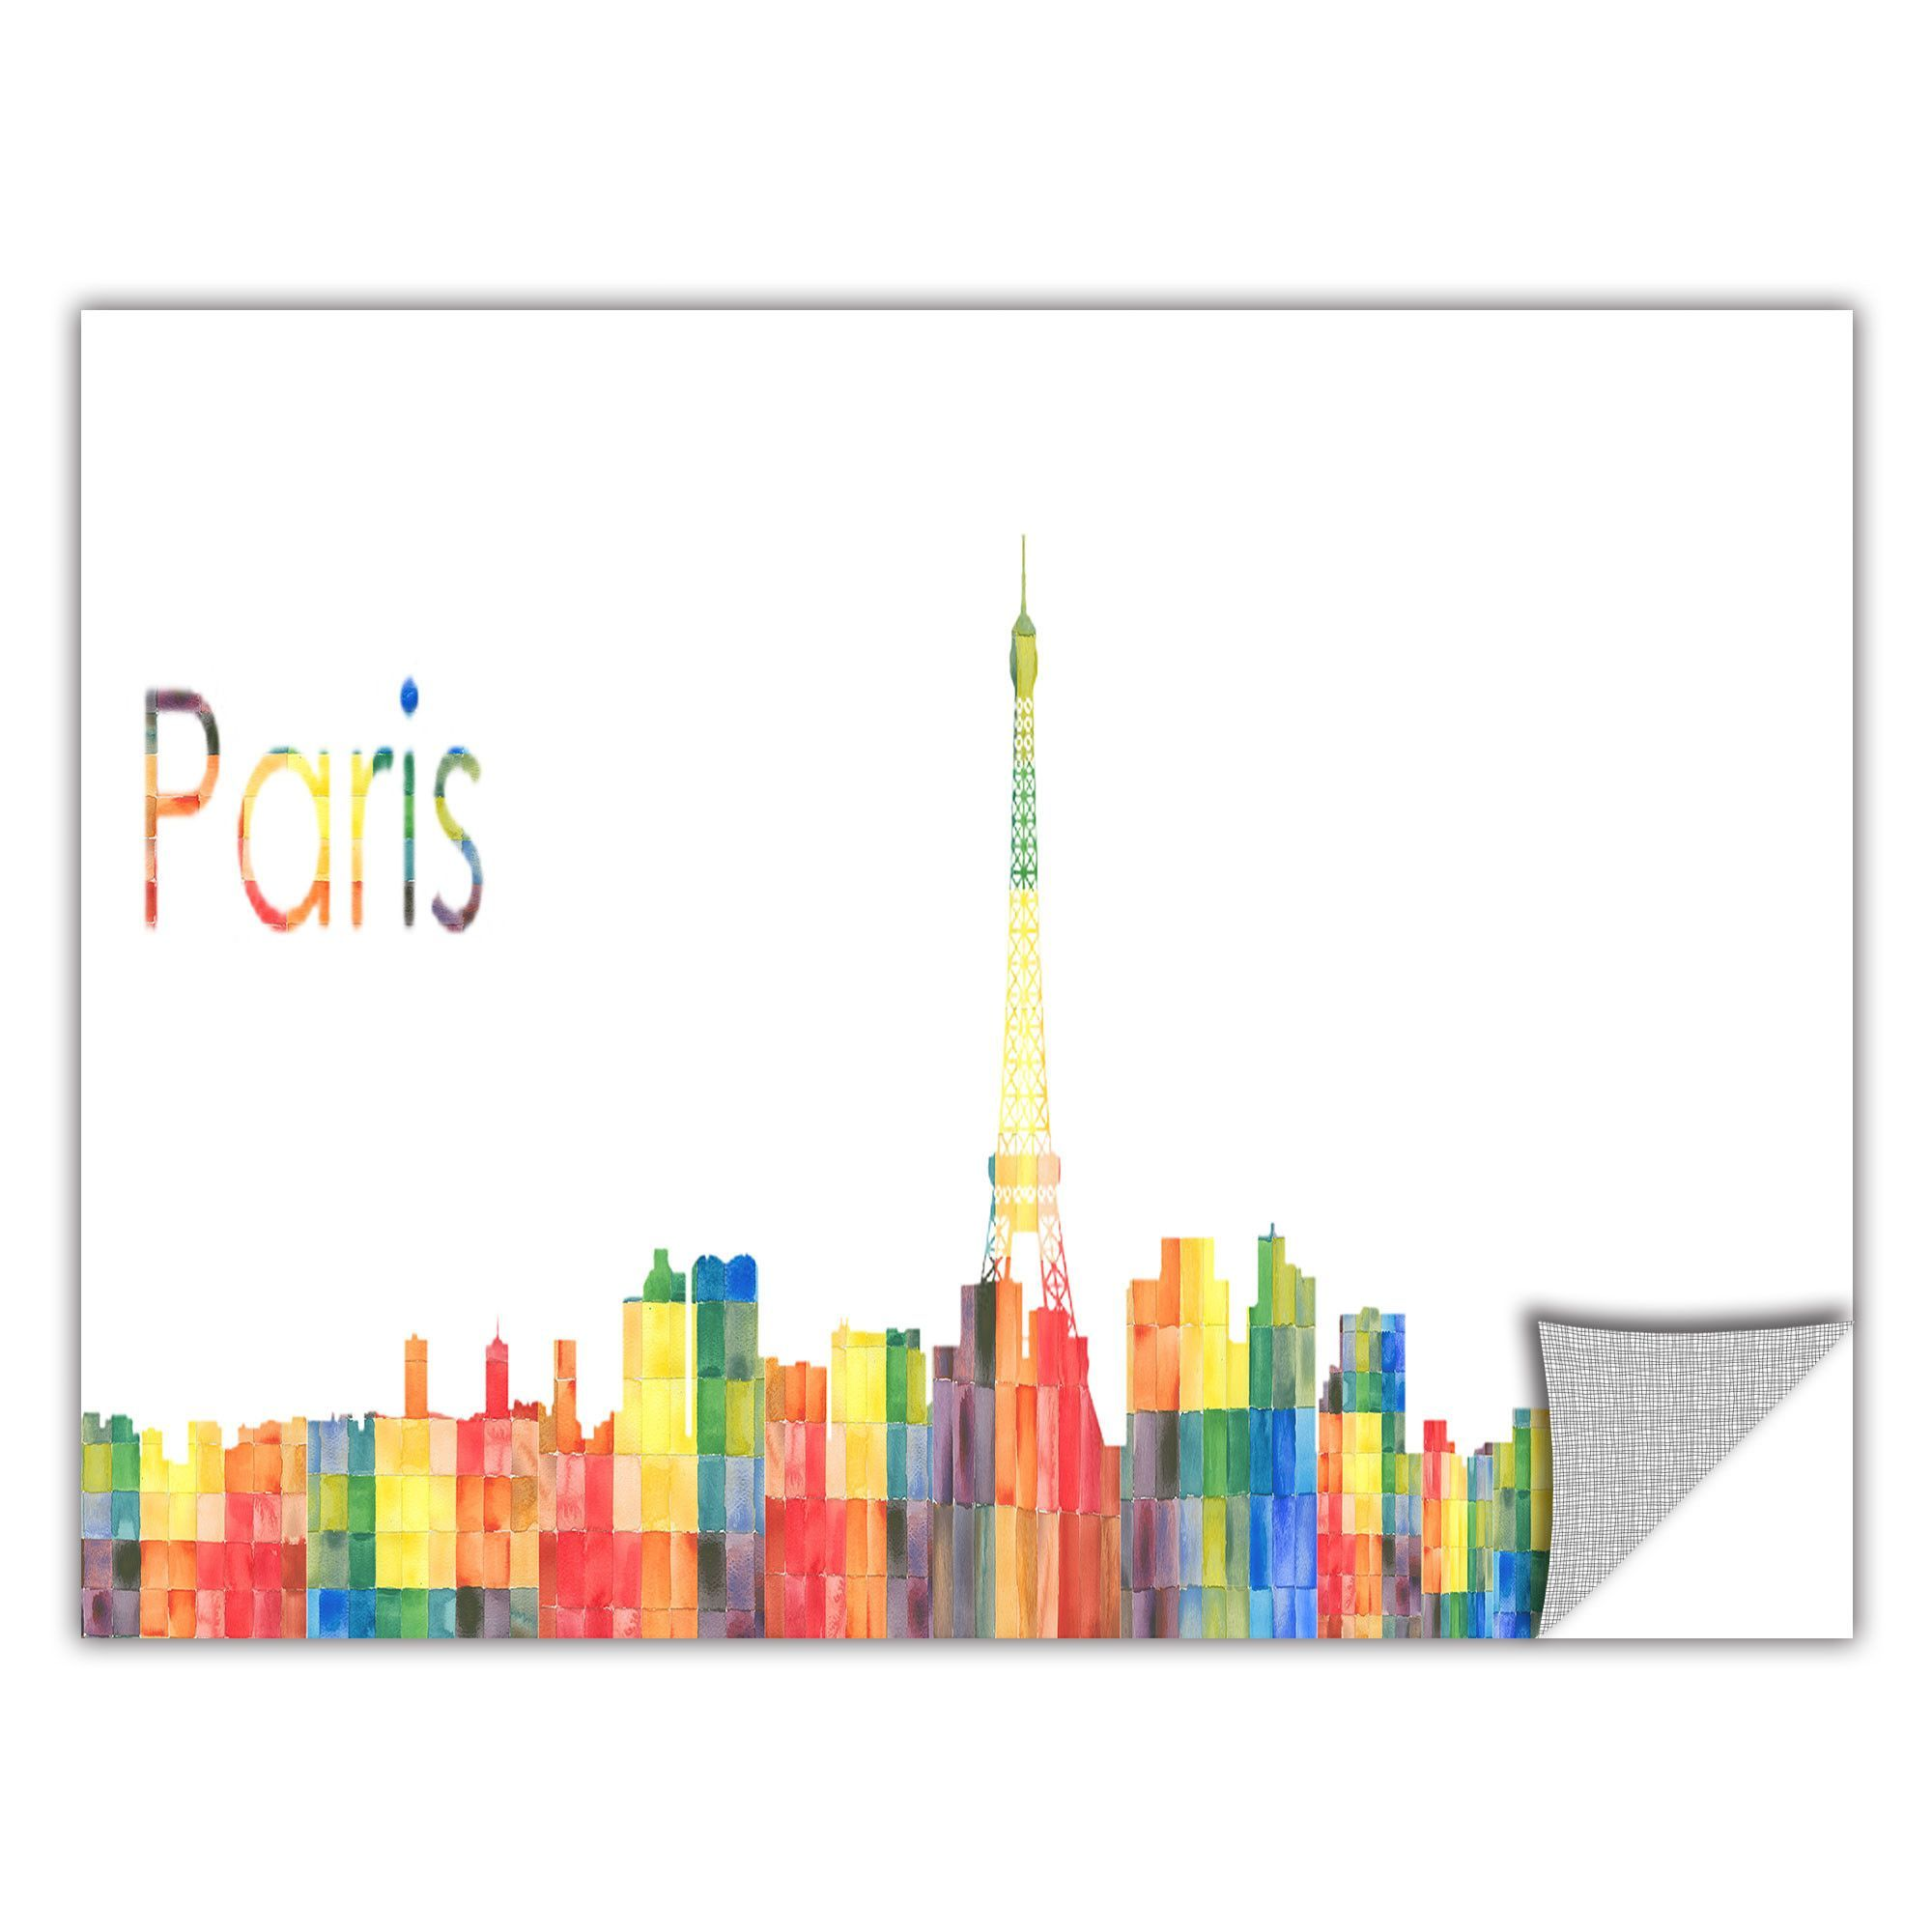 ArtApeelz 'Paris' by Revolver Ocelot Graphic Art on Wrapped Canvas